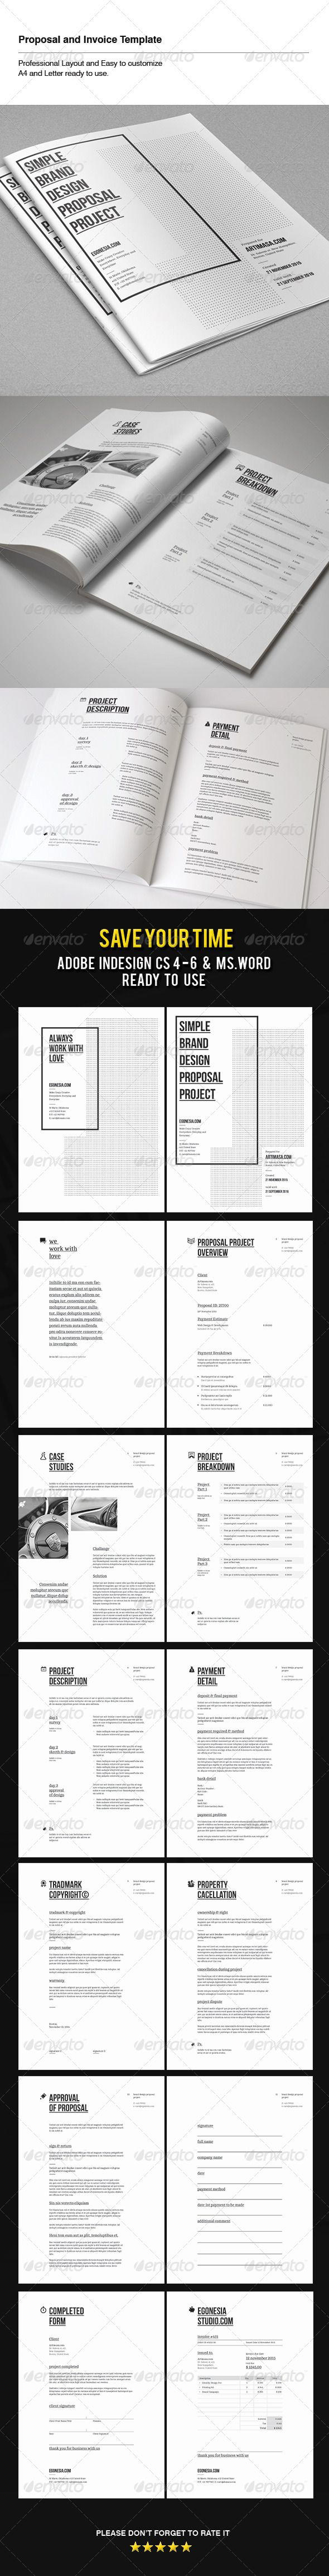 Proposal & Invoice Template - Proposals & Invoices Stationery